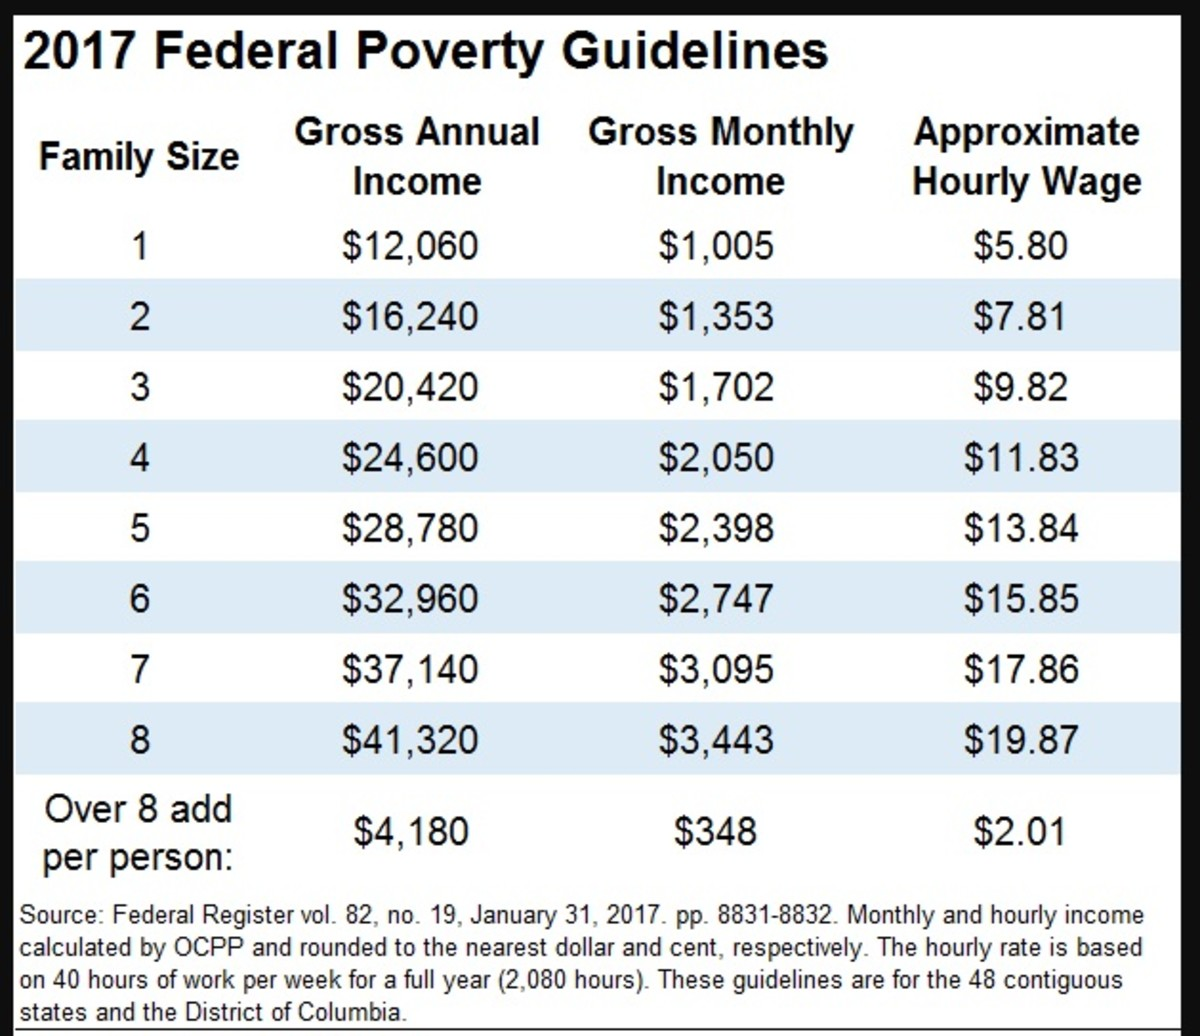 The closer you are to the poverty guidelines, the more likely you are to get the maximum monthly SNAP benefit.